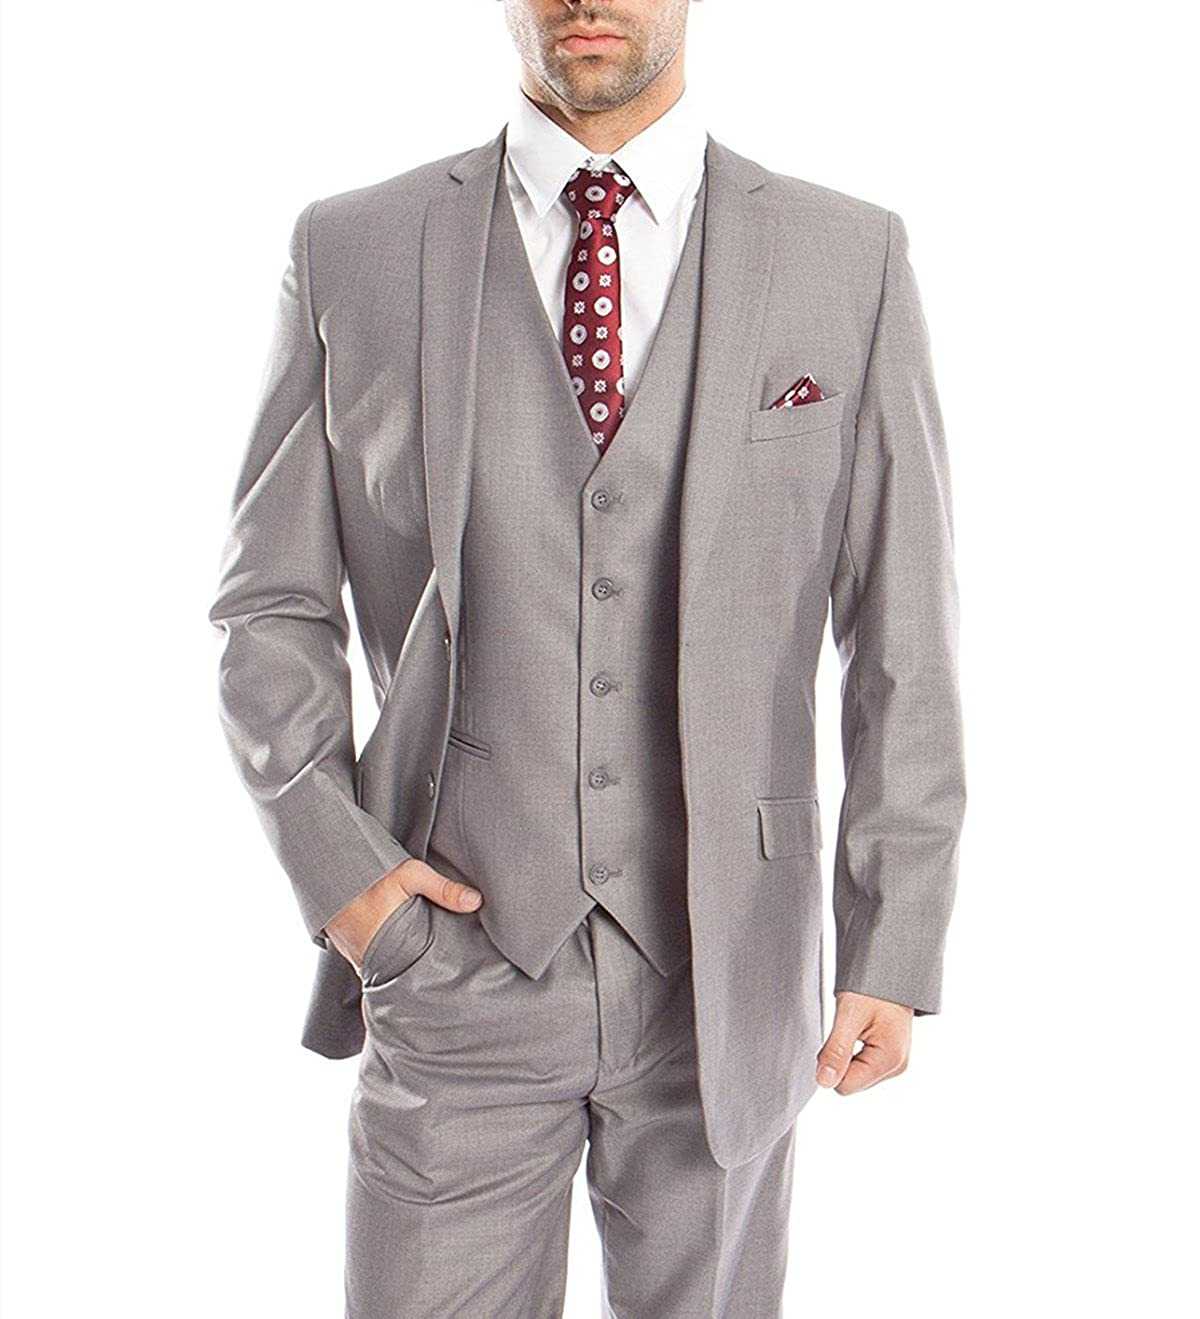 YSMO Men's Light Gray 3 Piece Suit Jacket & Pants & Vest Business Brazer YSMO18061109